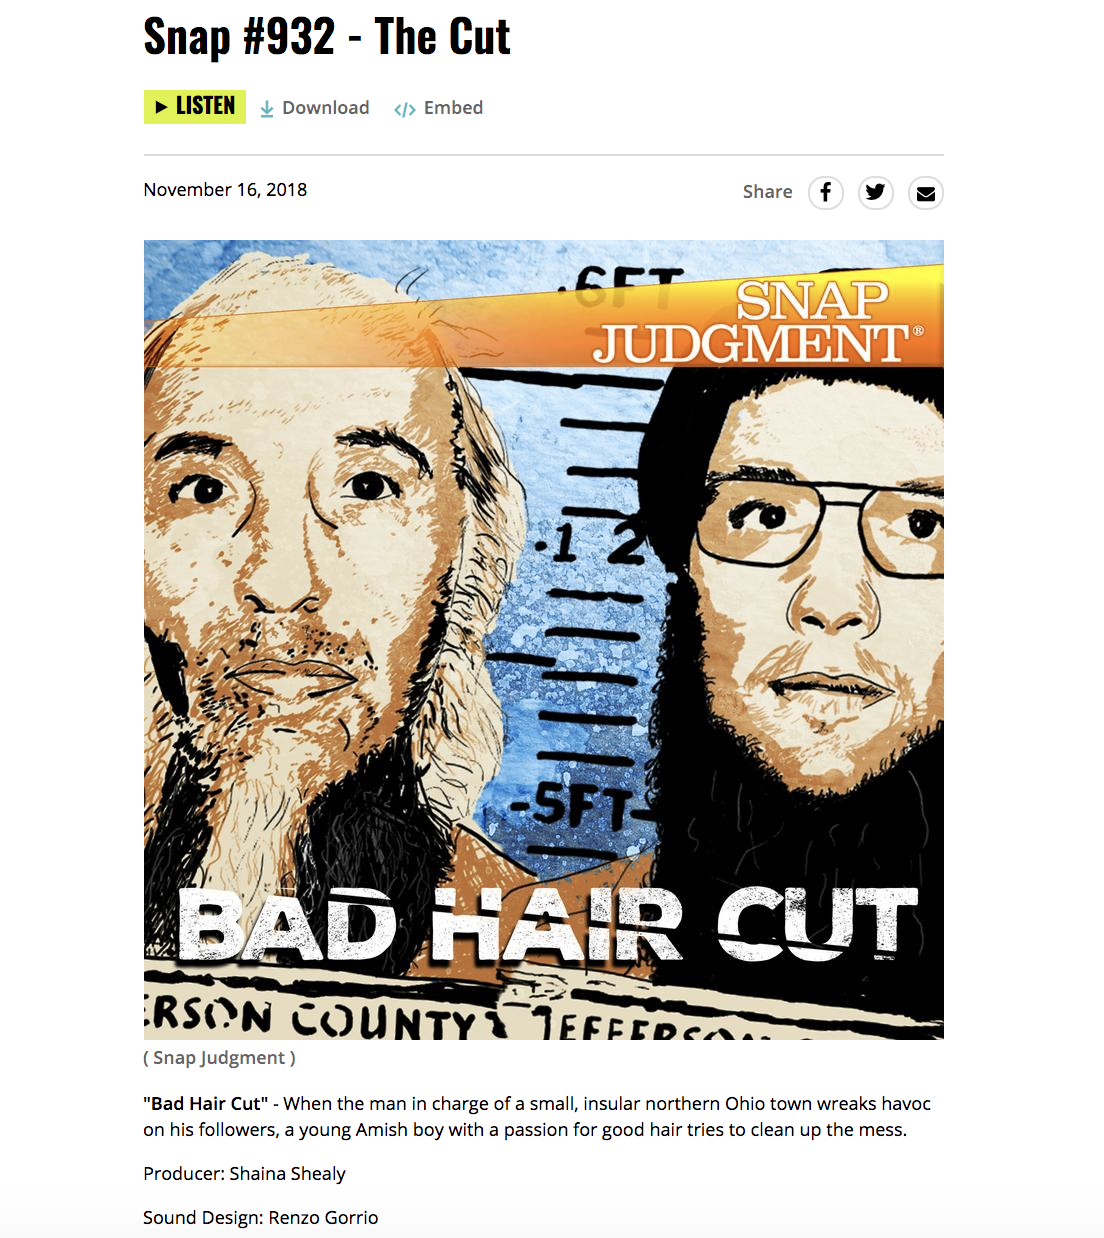 """Bad Hair Cut""  - When the man in charge of a small, insular northern Ohio town wreaks havoc on his followers, a young Amish boy with a passion for good hair tries to clean up the mess.  Producer: Shaina Shealy  Sound Design: Renzo Gorrio"